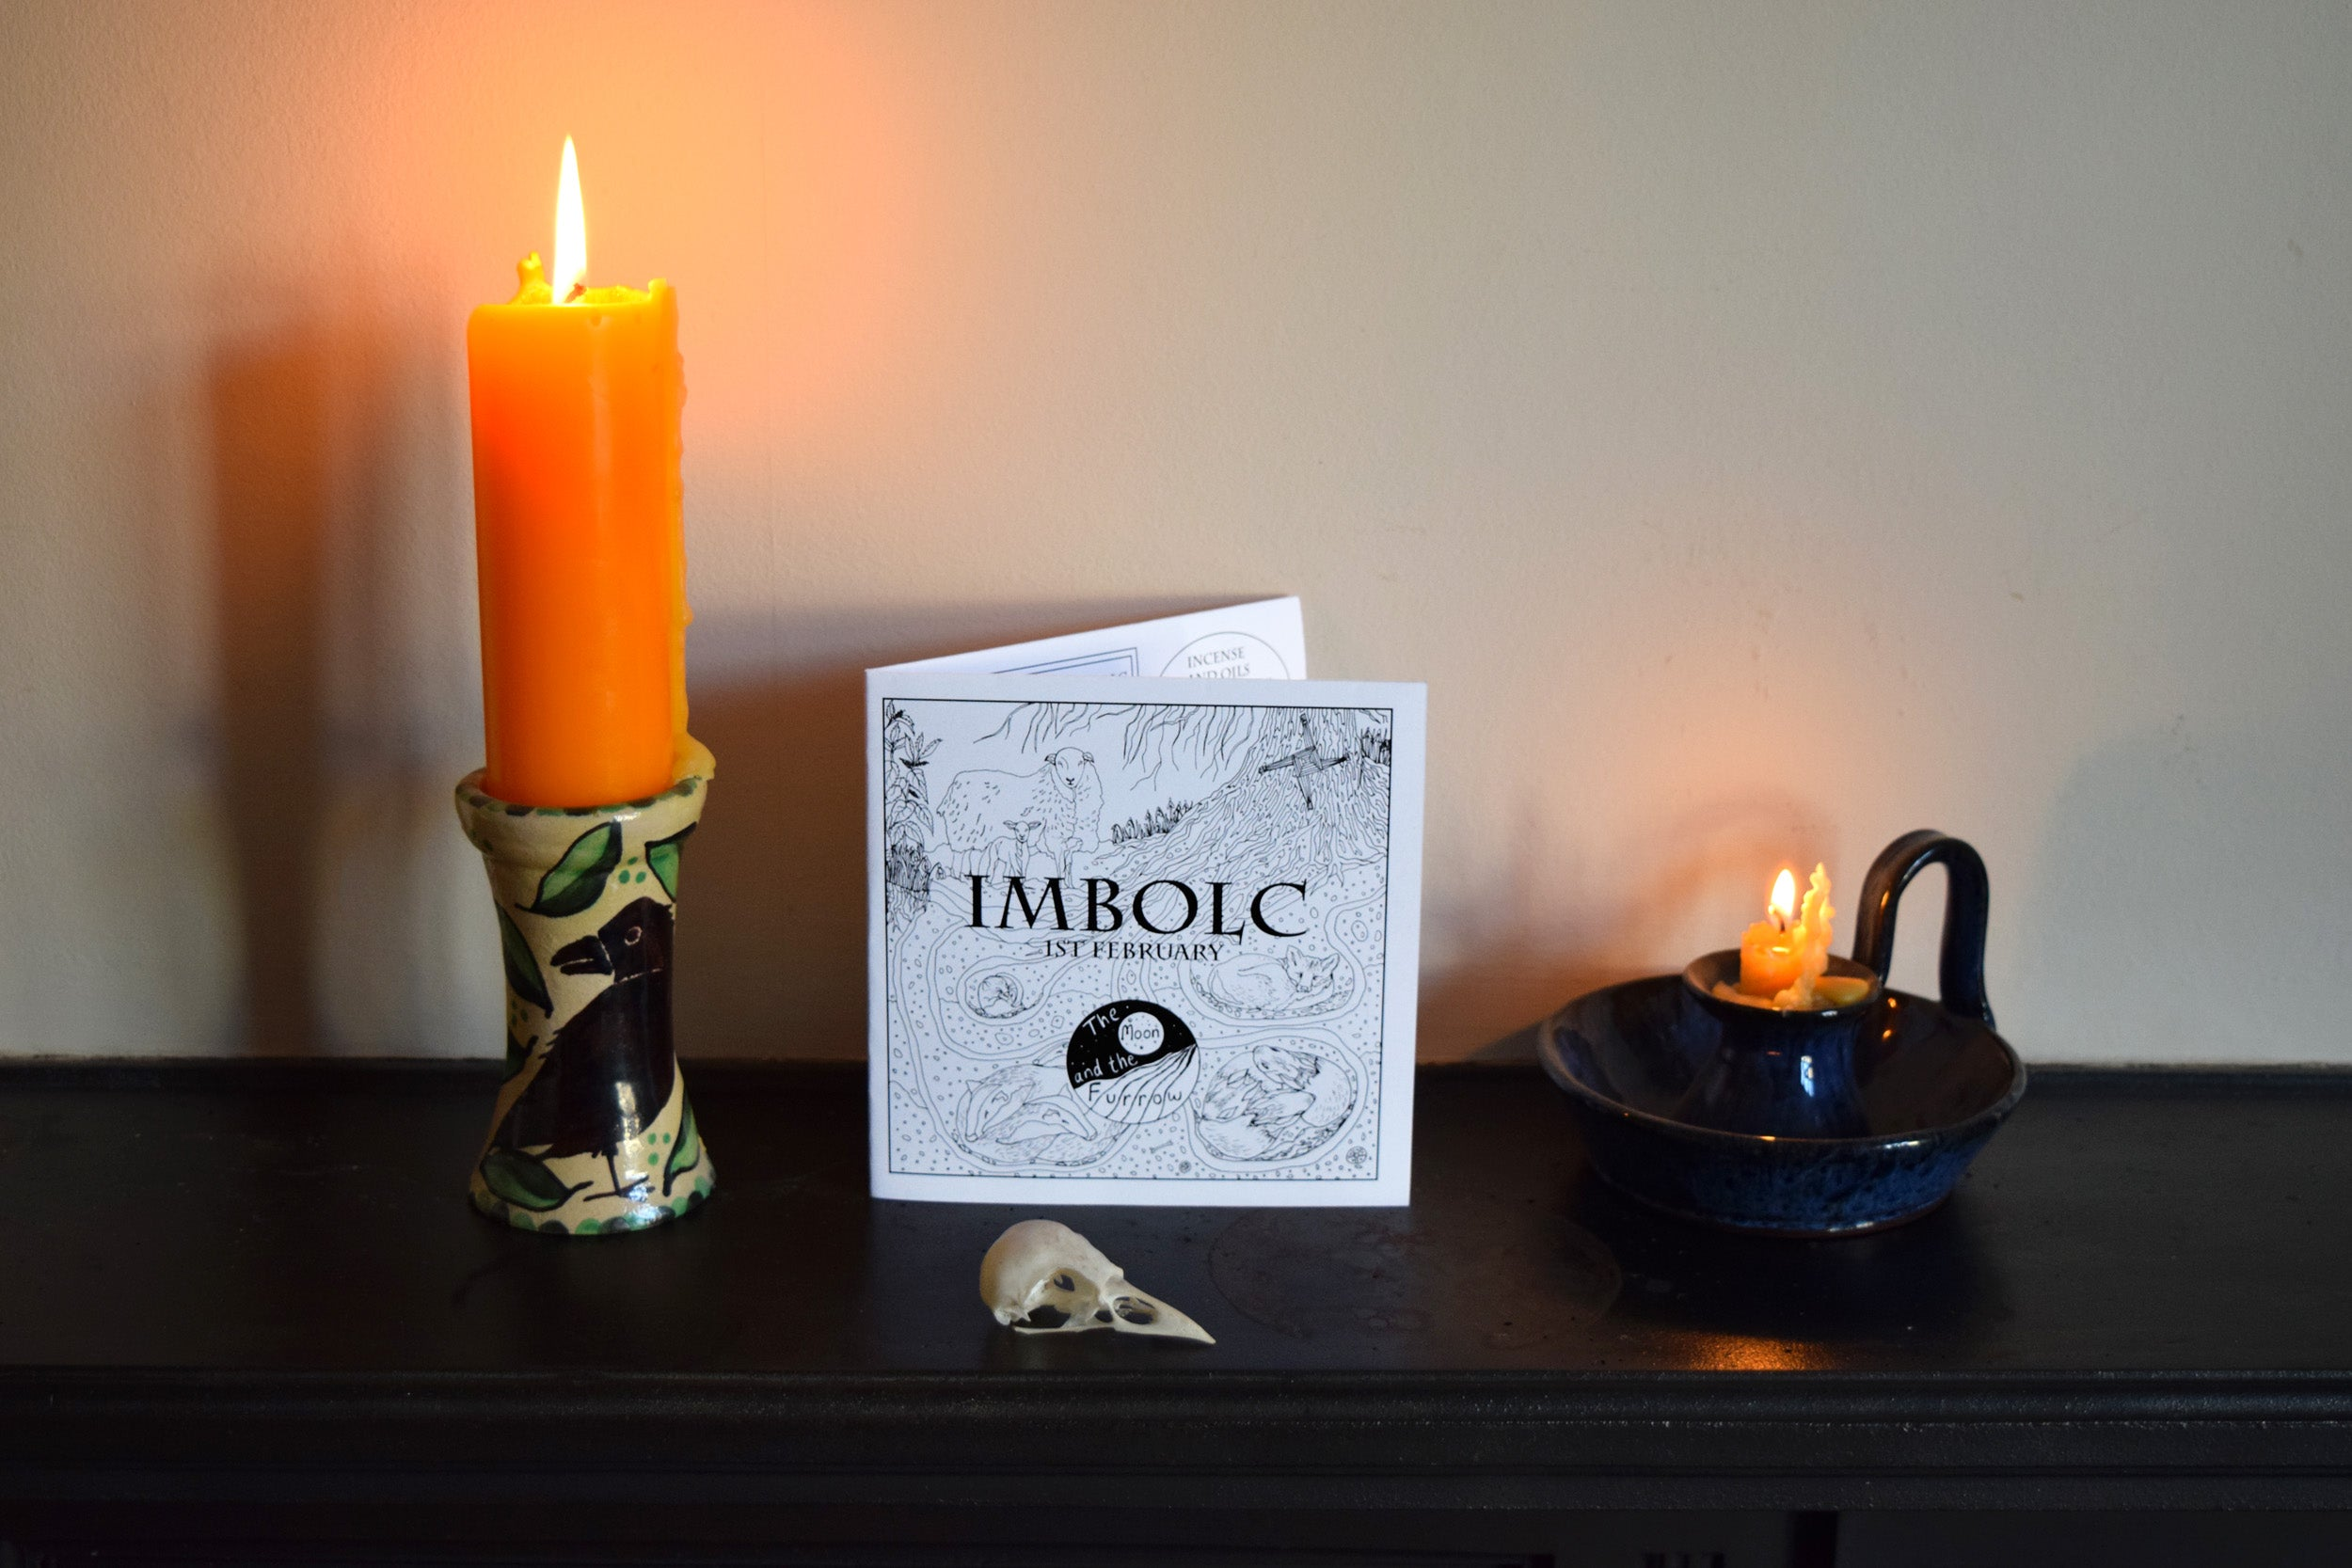 Imbolc Organic Cotton Handkerchief and booklet